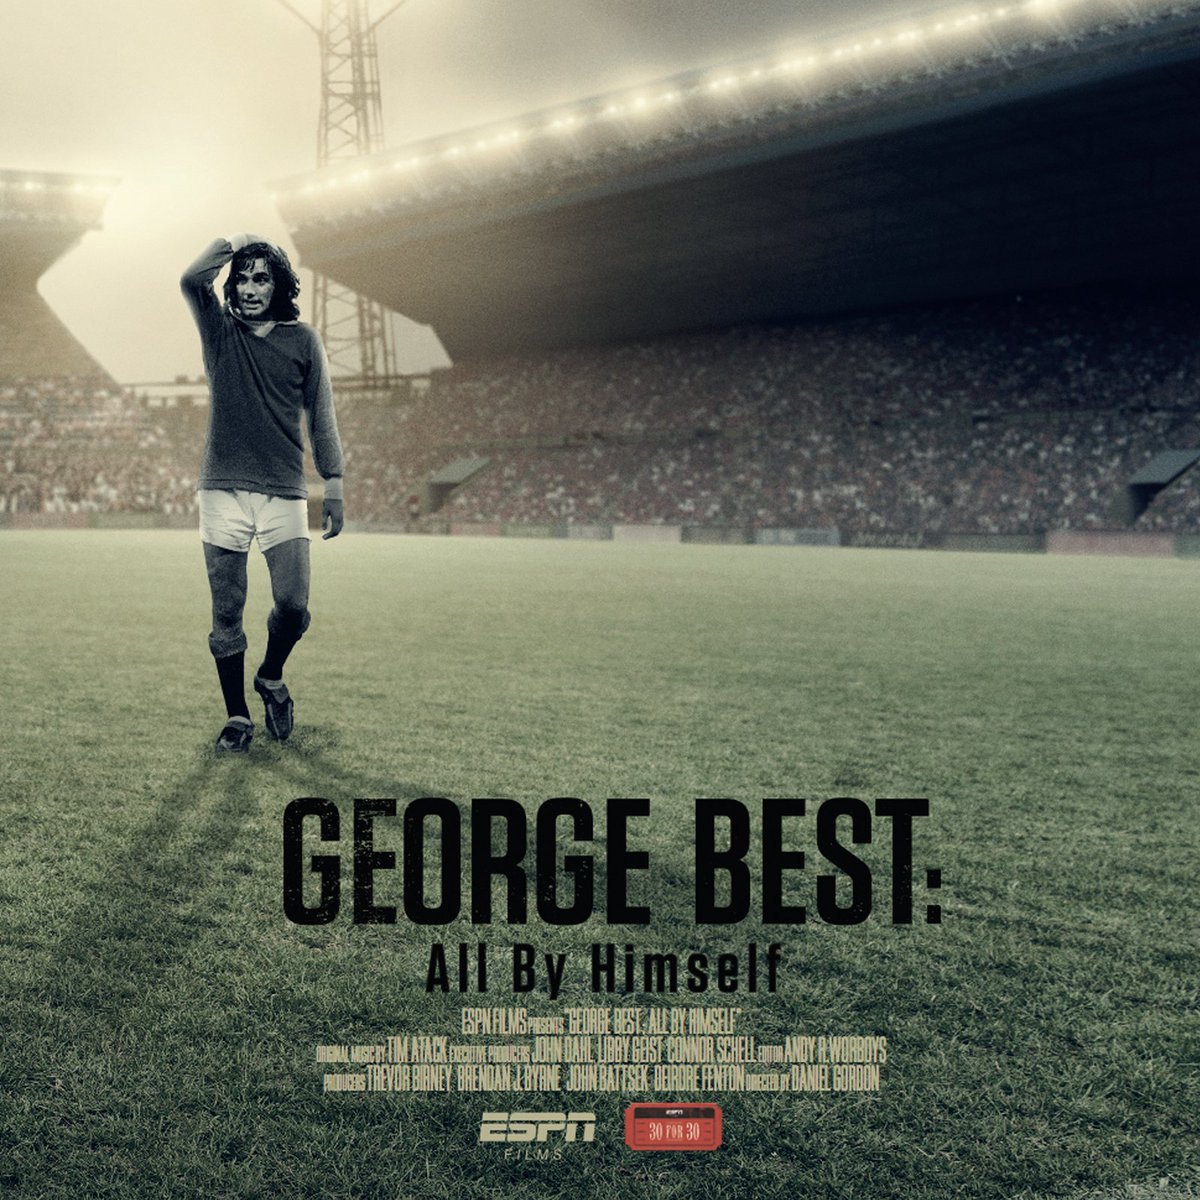 See #30for30 #GeorgeBest: All By Himself on the big screen at this year's @CraicFest in NYC. Get your tickets at thecraicfest.com.